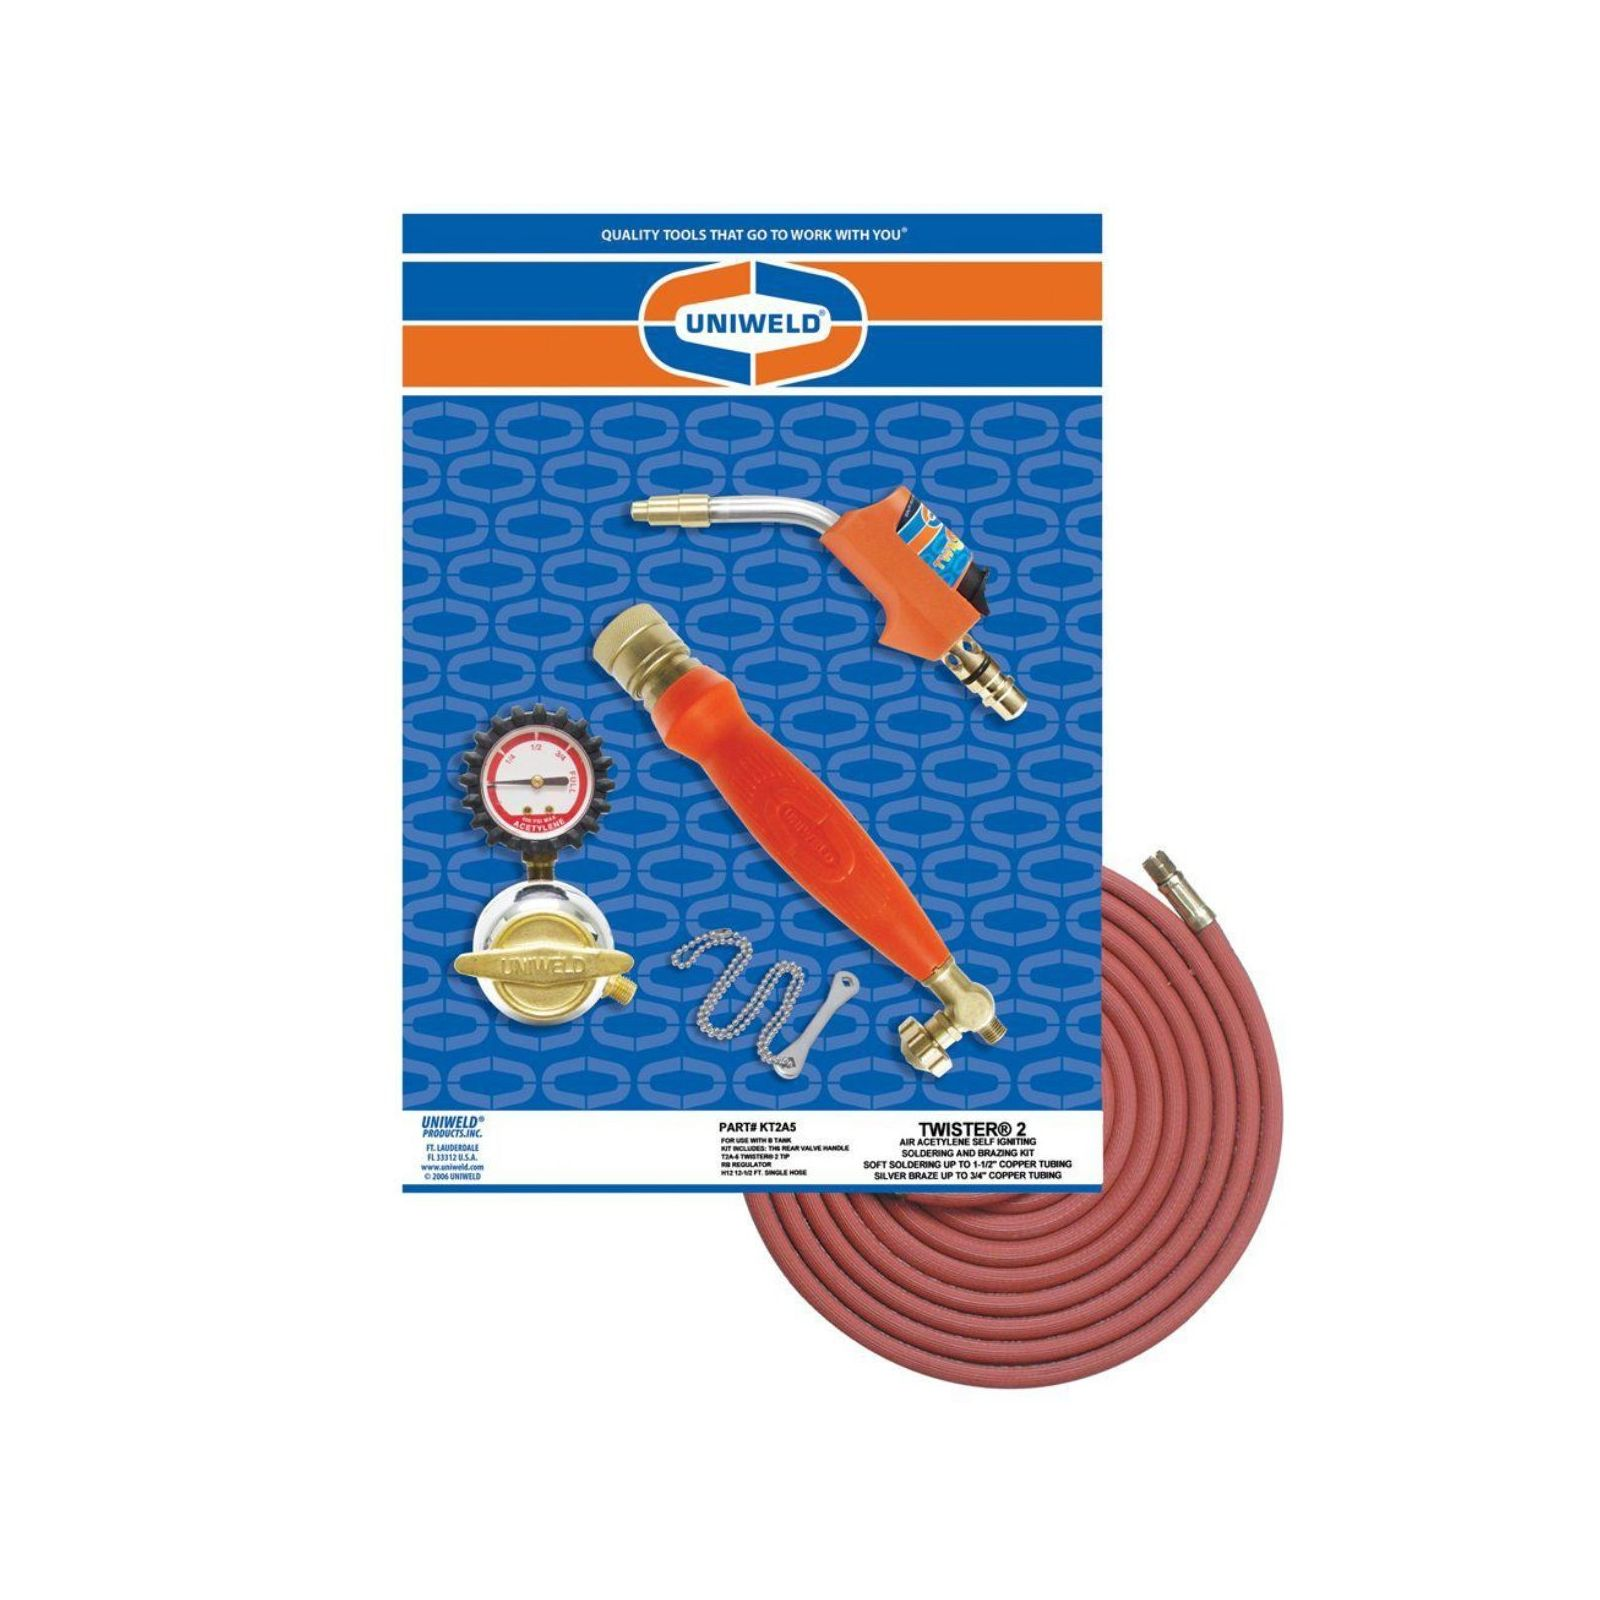 Uniweld KT2A5 - Acetylene Twistera® 2 Self Igniting B Kit with T2A-5 Twistera®2 Swirl Combustion Tip